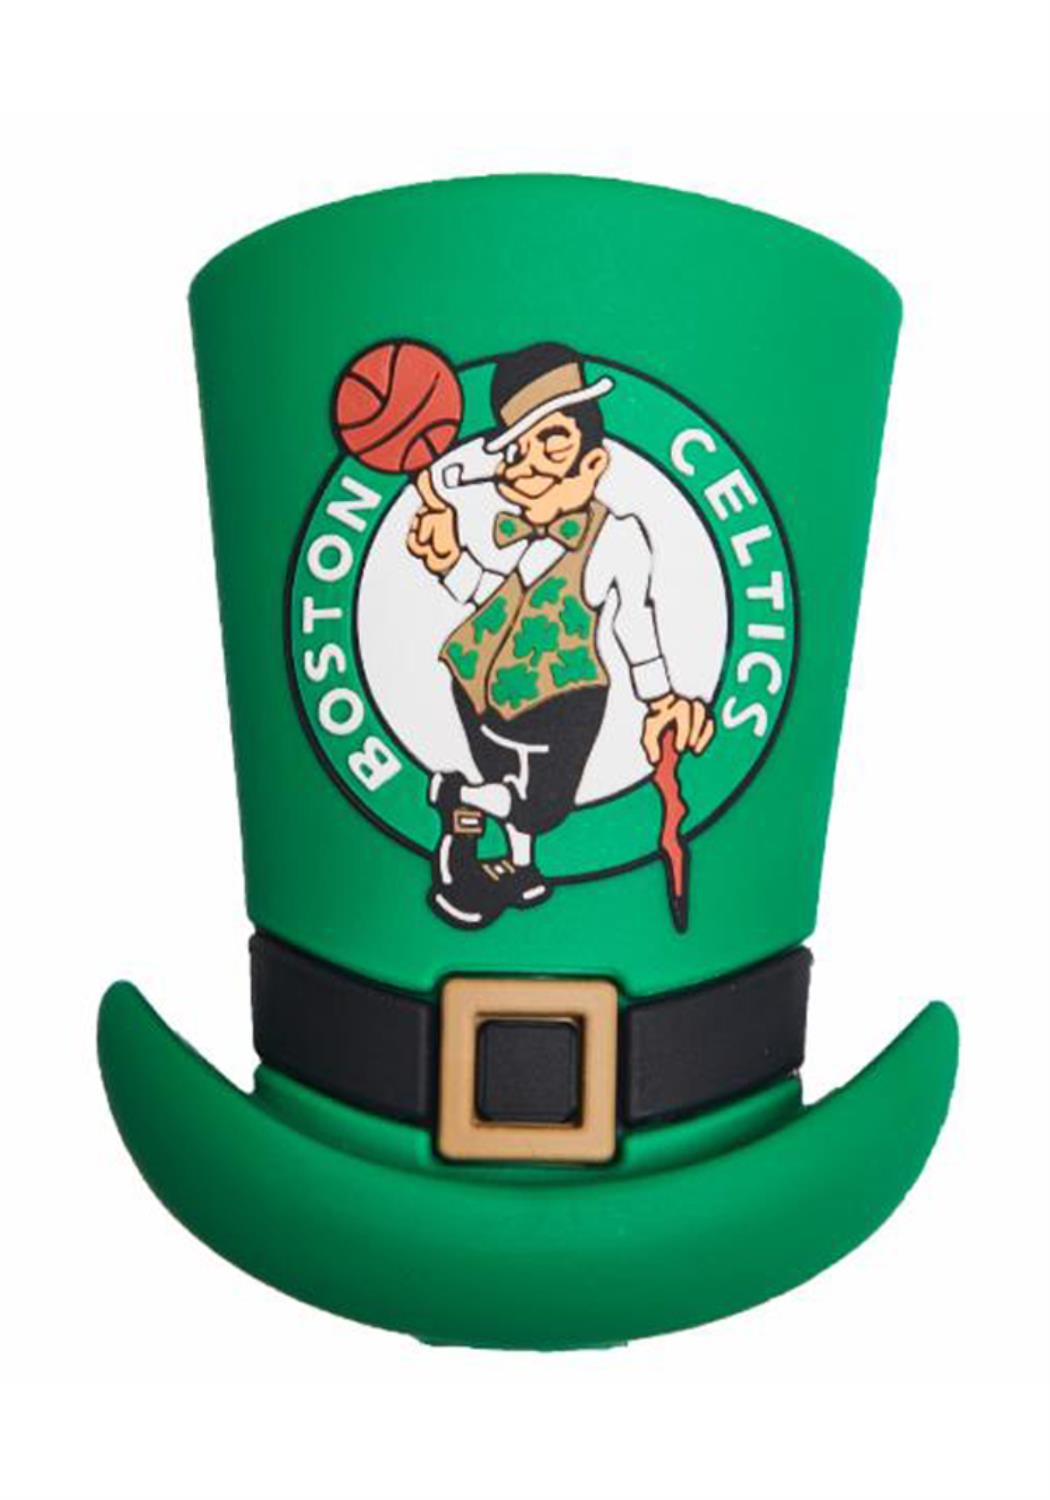 CELTICS - LUCKY HAT - OFFICIAL NBA LICENSED PHONE CHARGER